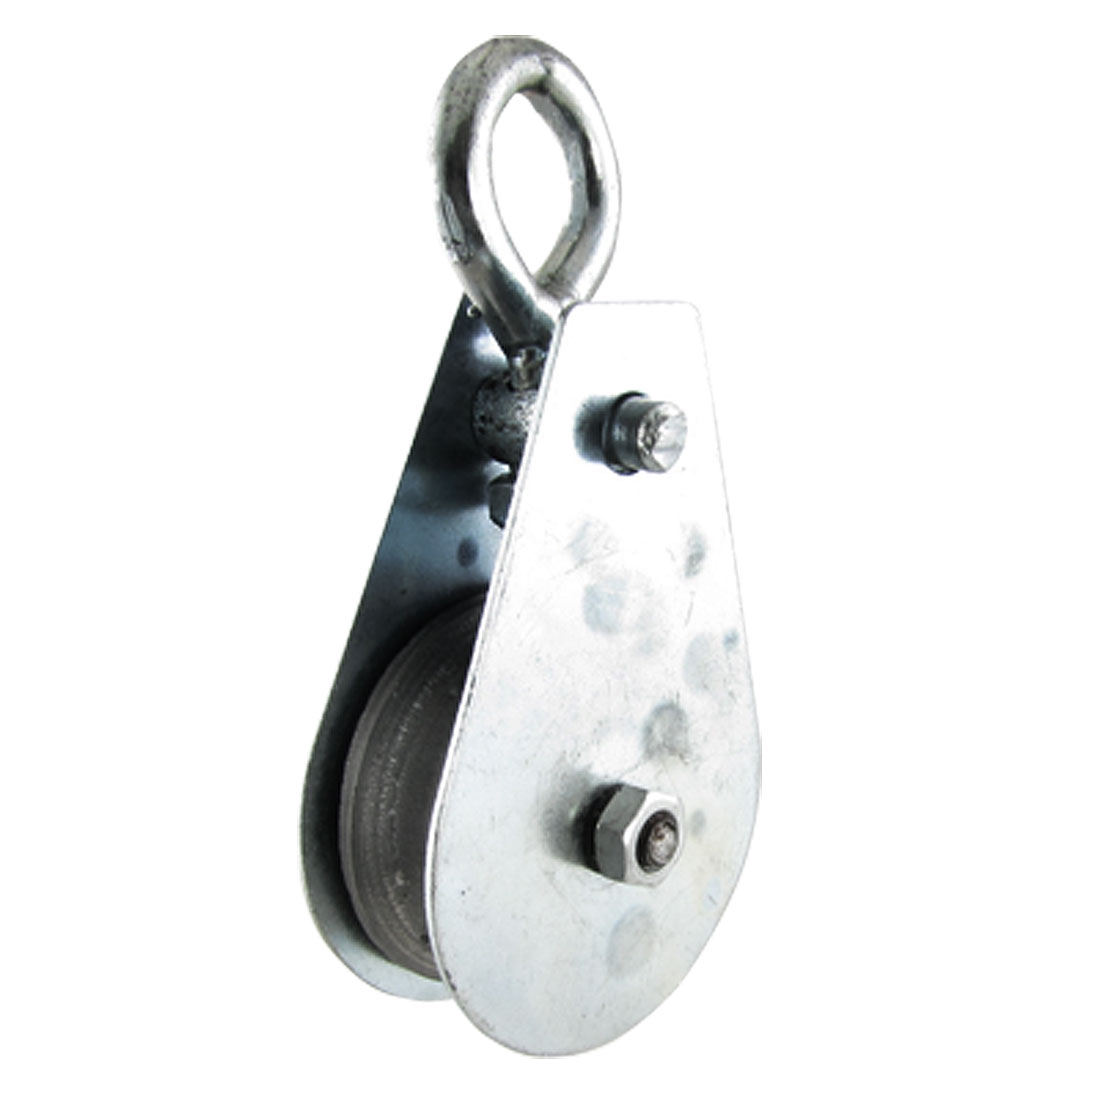 Swivel Hook Single Rope Lifting Pulley Load 0.1 Ton